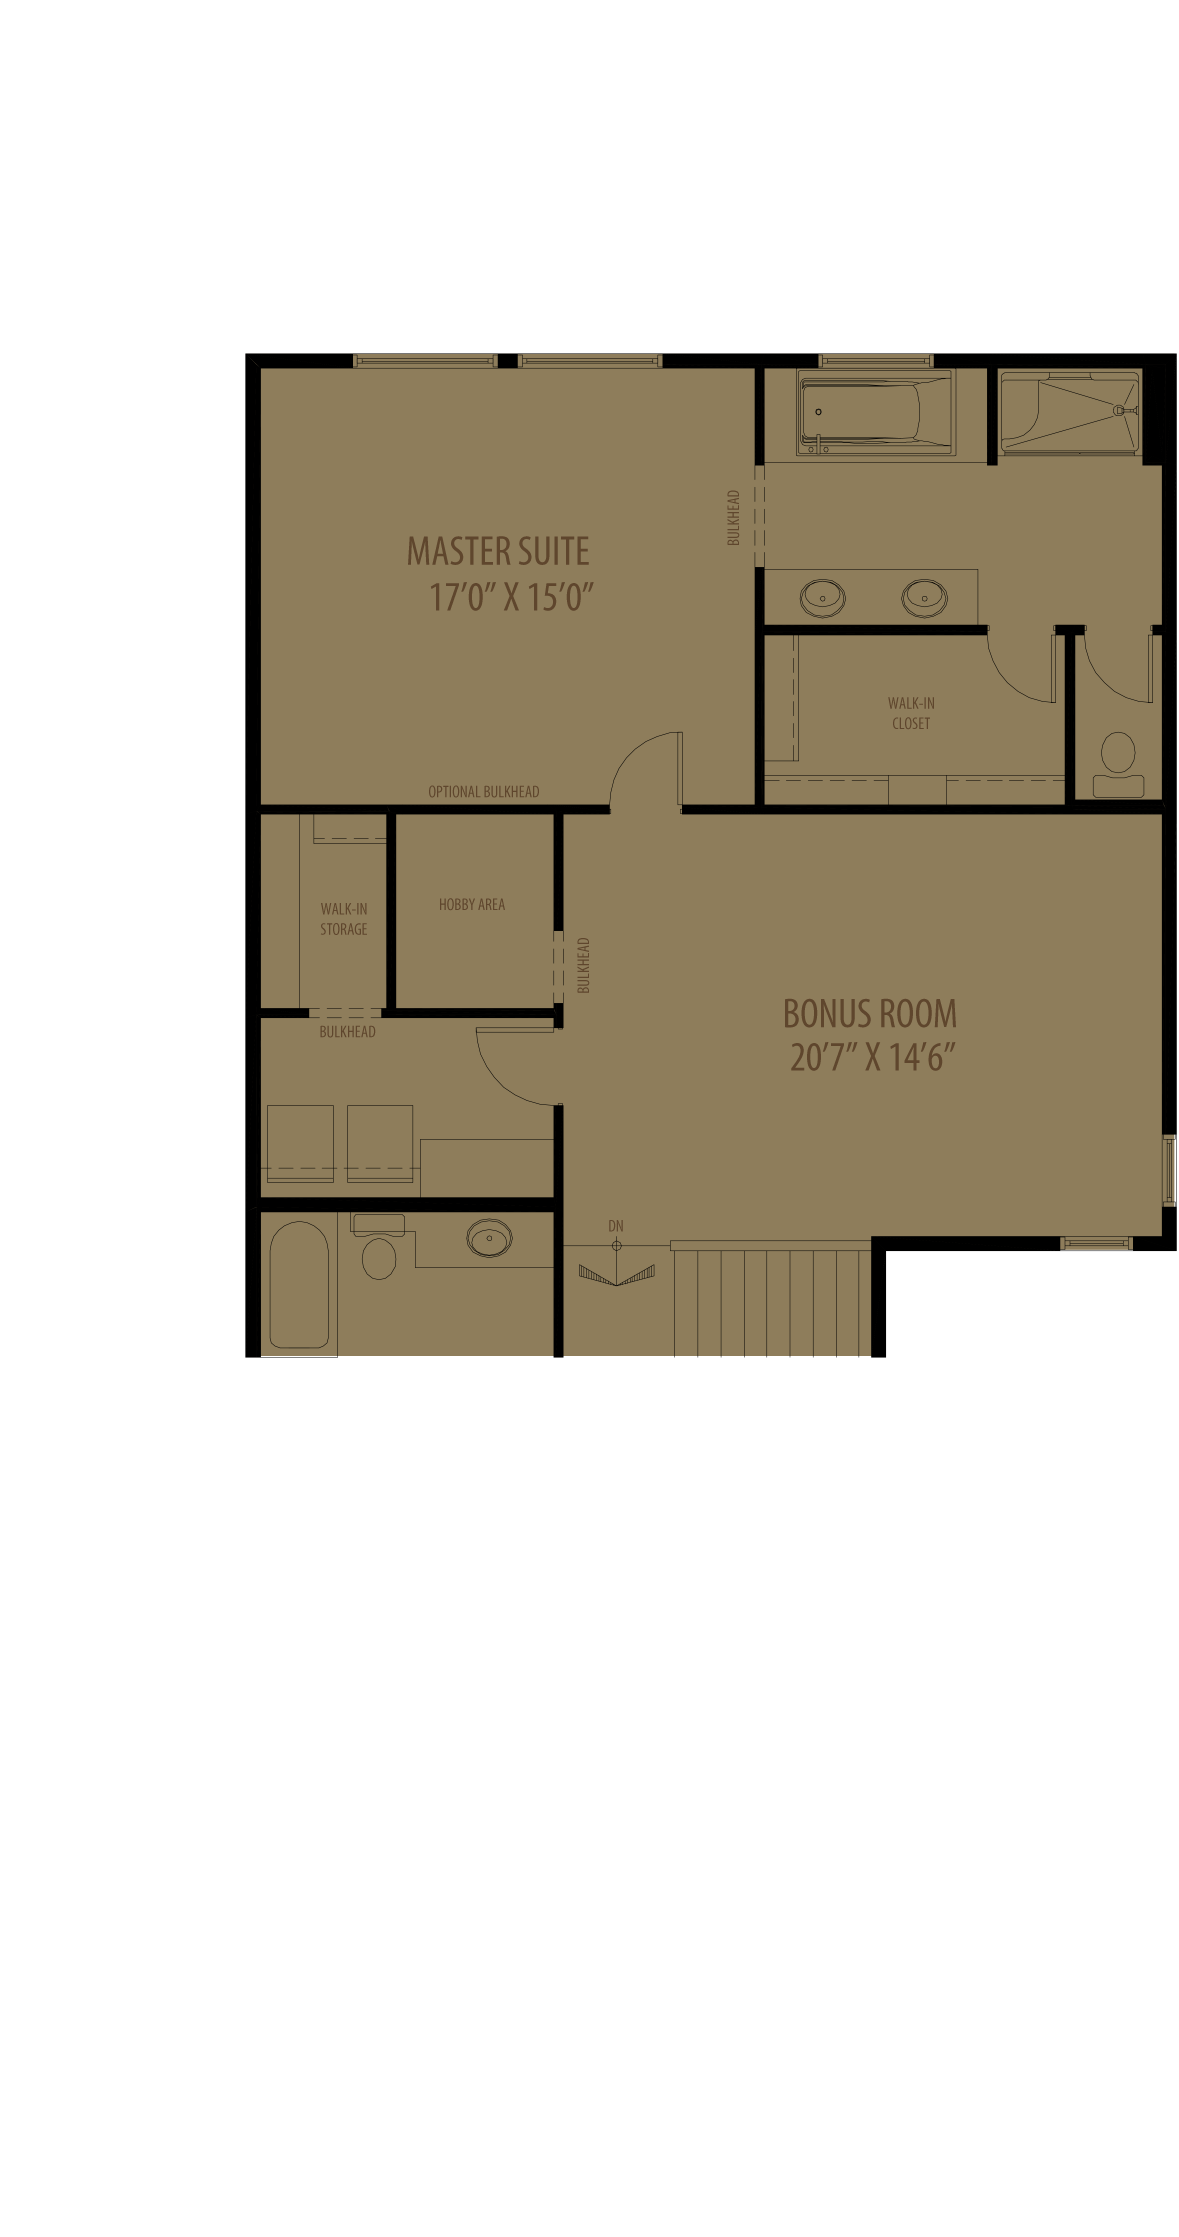 Center Bonus Room With Hobby